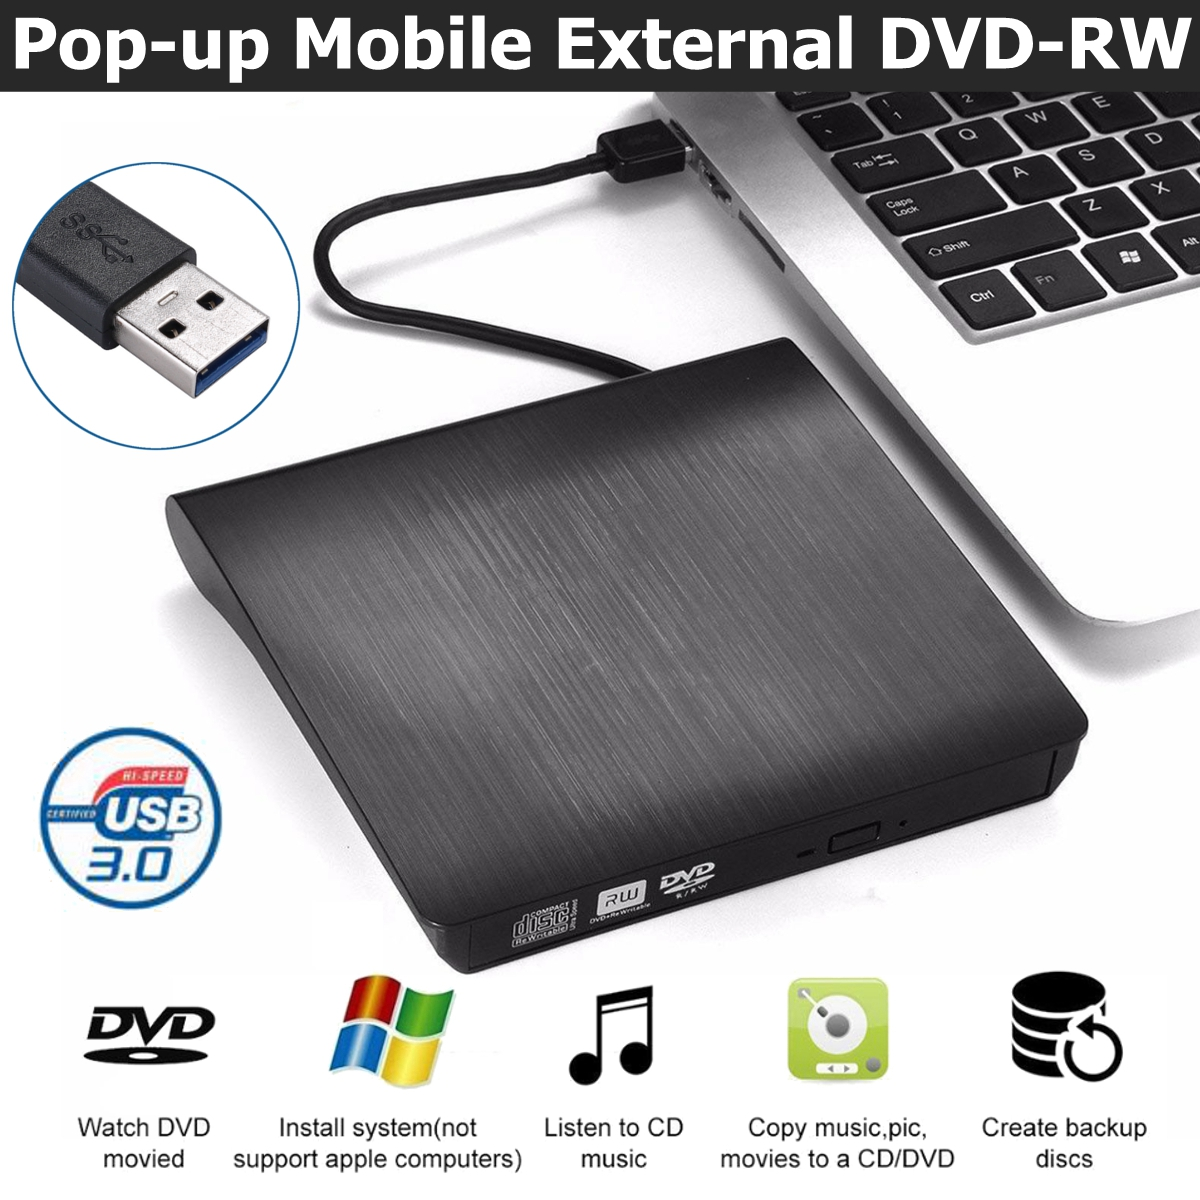 Slim External <font><b>DVD</b></font> Drive <font><b>USB</b></font> 3.0 <font><b>DVD</b></font>-<font><b>RW</b></font> CD-<font><b>RW</b></font> Combo Drive Burner Reader Player Recorder Portatil for Laptop image